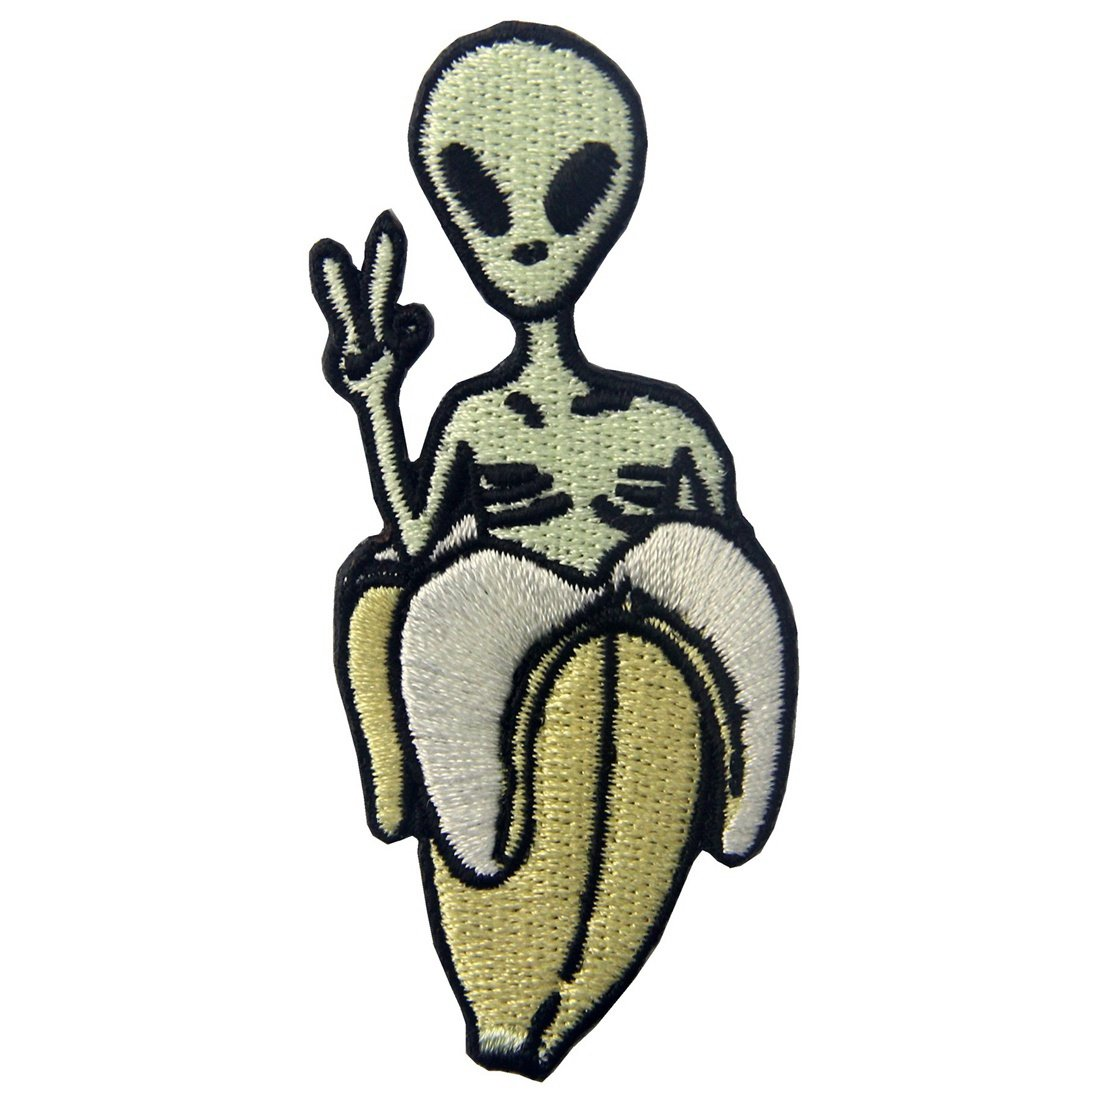 Alien In Banana Patch Embroidered Applique Iron On Sew On Emblem ZEGIN